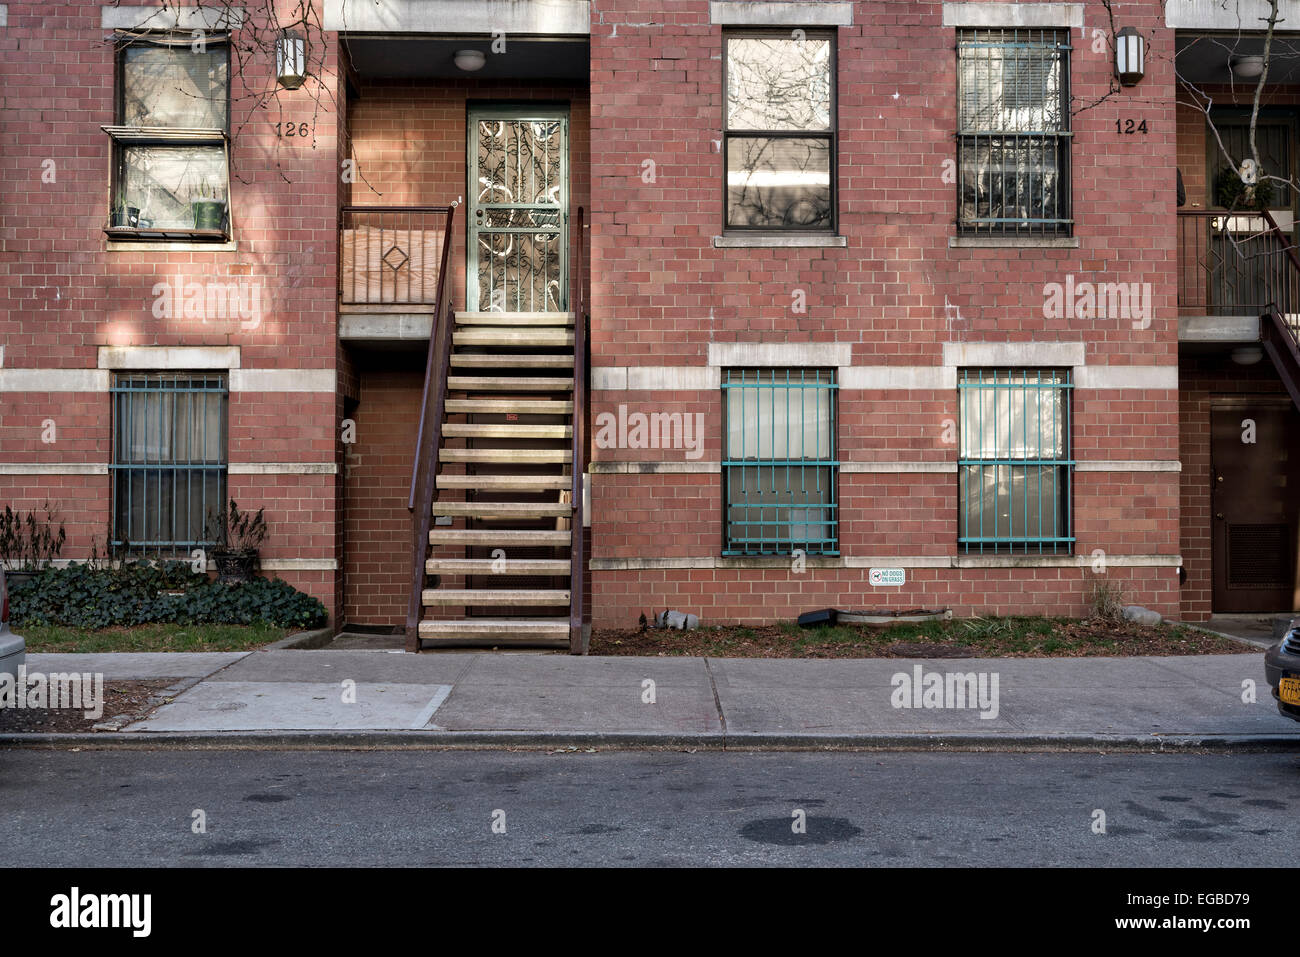 Multi-Family home in a modest section of Williamsburg, Brooklyn, NY, secority bars on the windows. - Stock Image